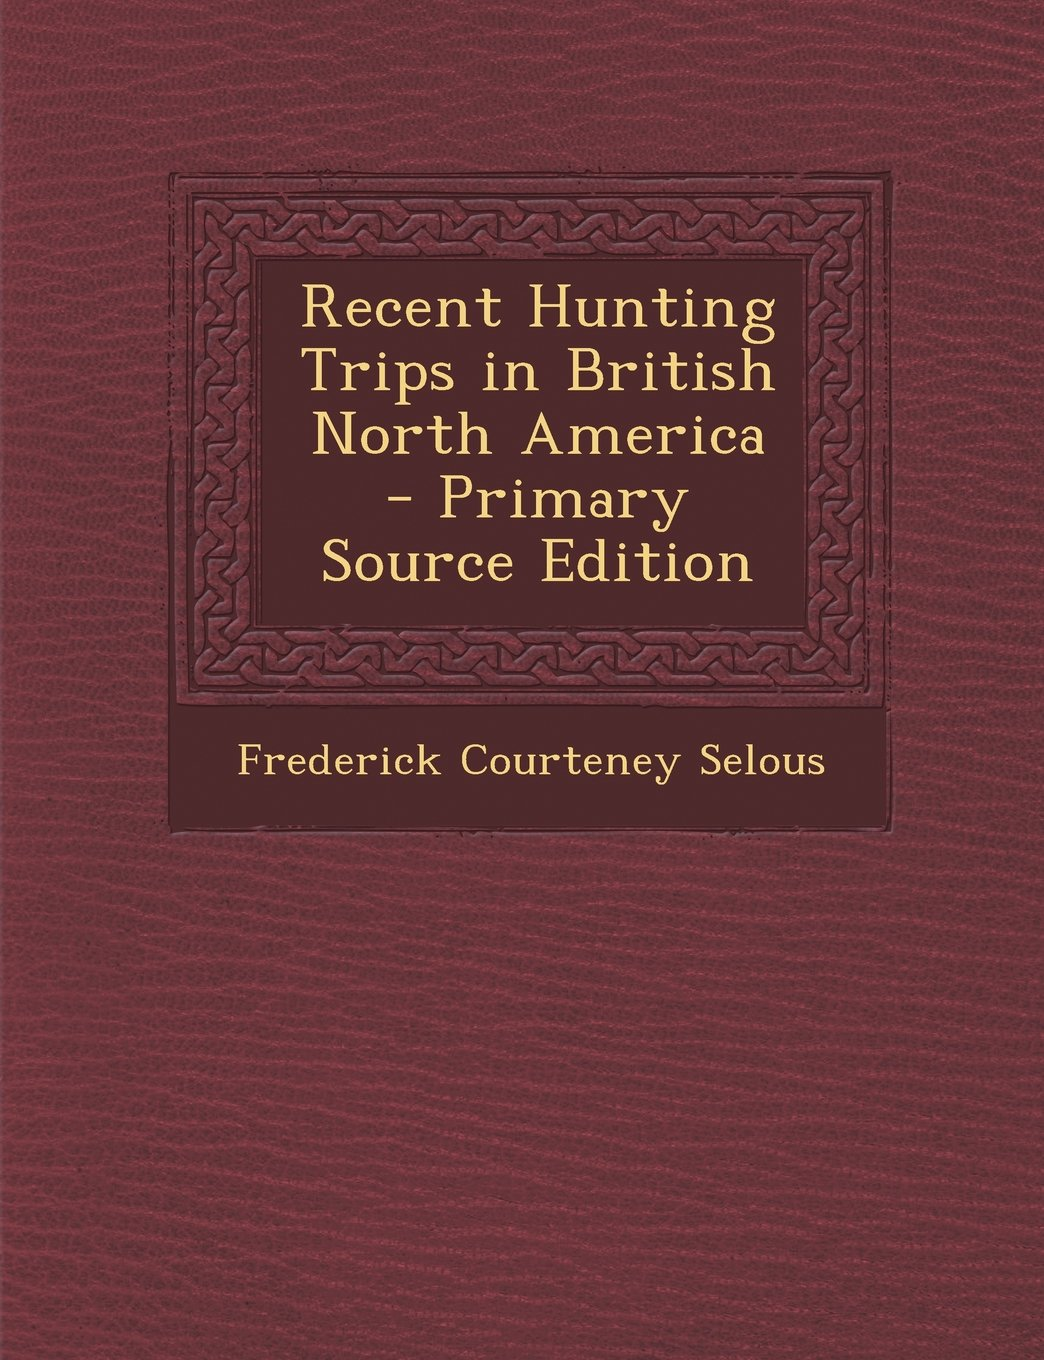 Recent Hunting Trips in British North America - Primary Source Edition PDF